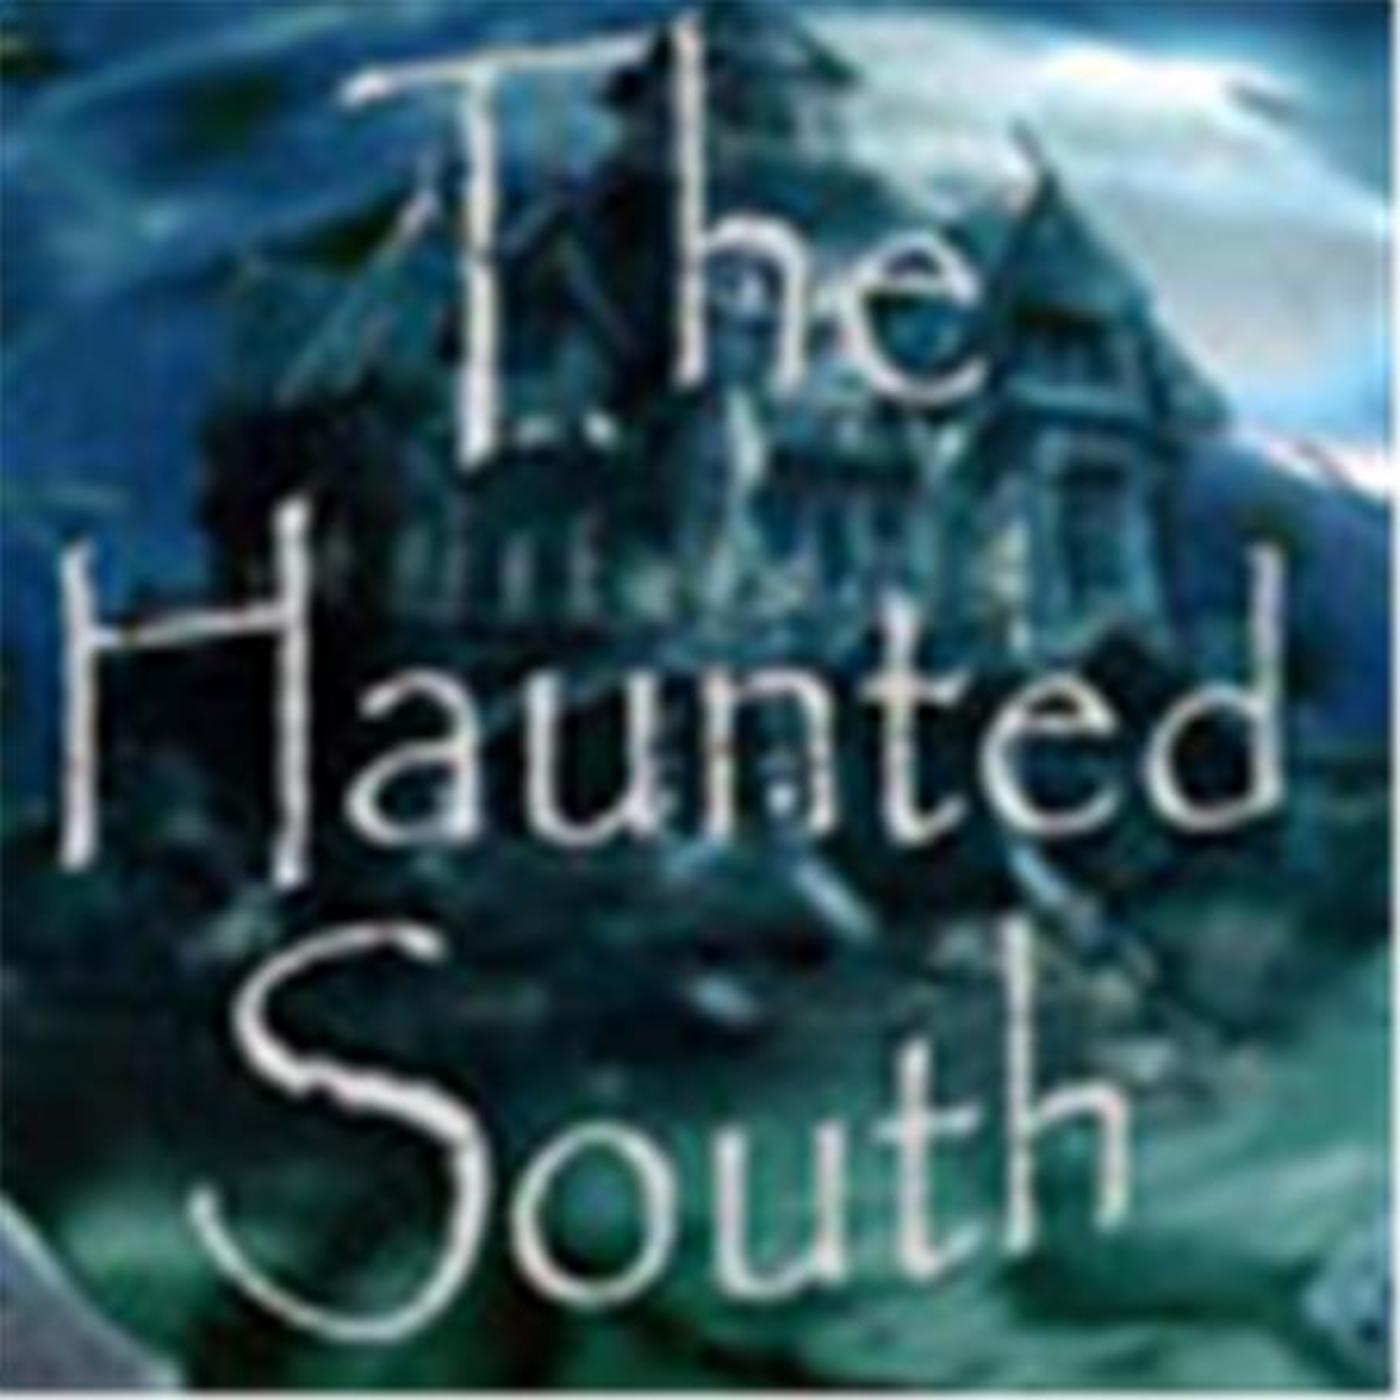 The Haunted South